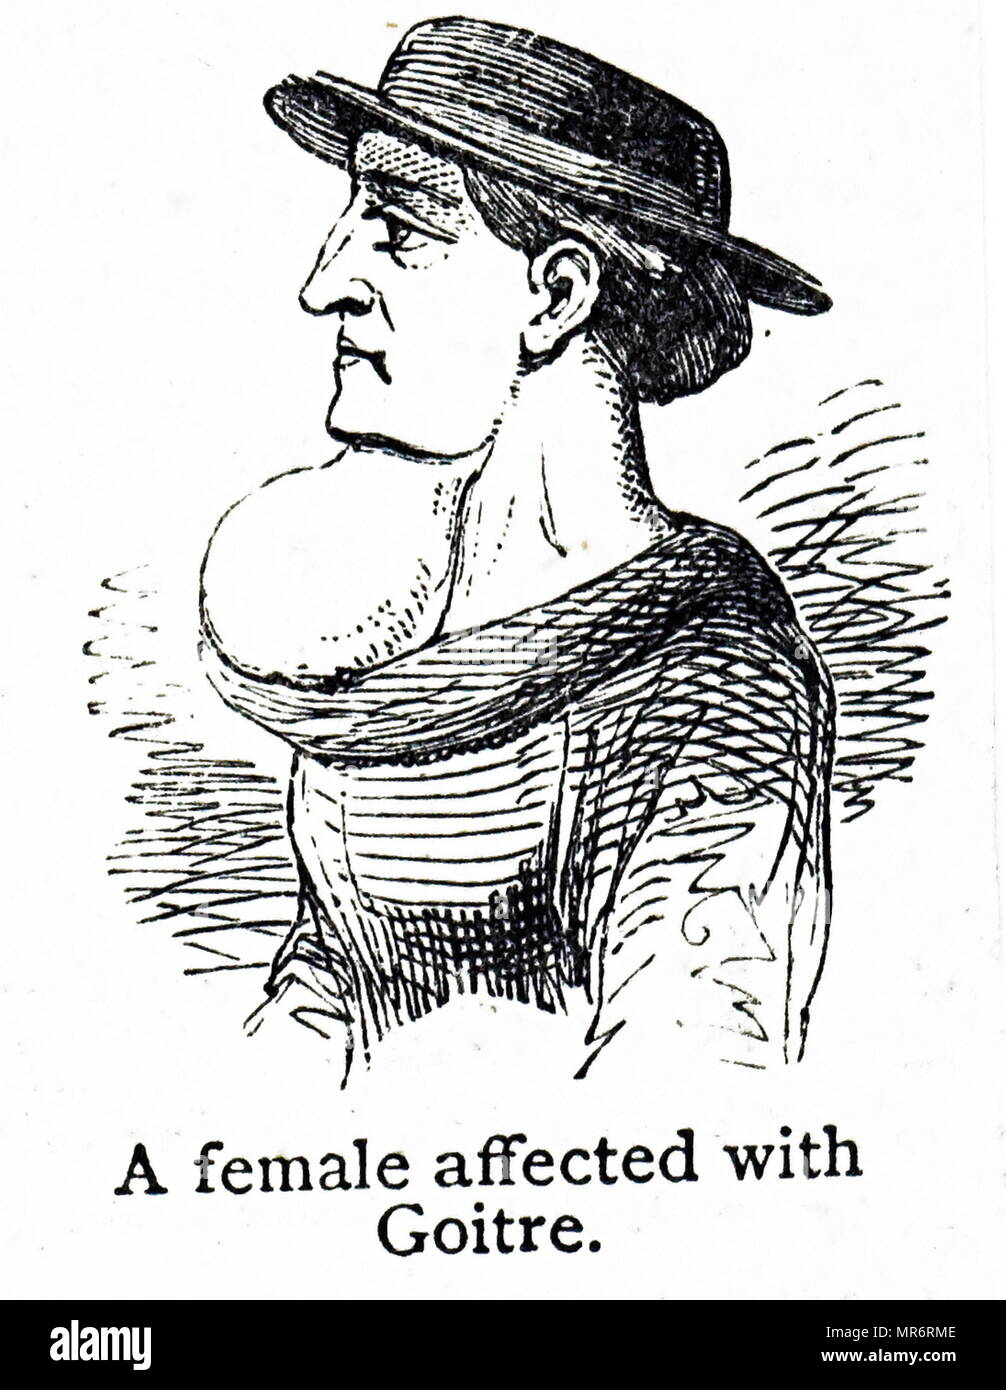 Engraving depicting a woman affected with Goitre. Goitre is the swelling of the neck resulting from an enlarged thyroid gland. Dated 19th century - Stock Image